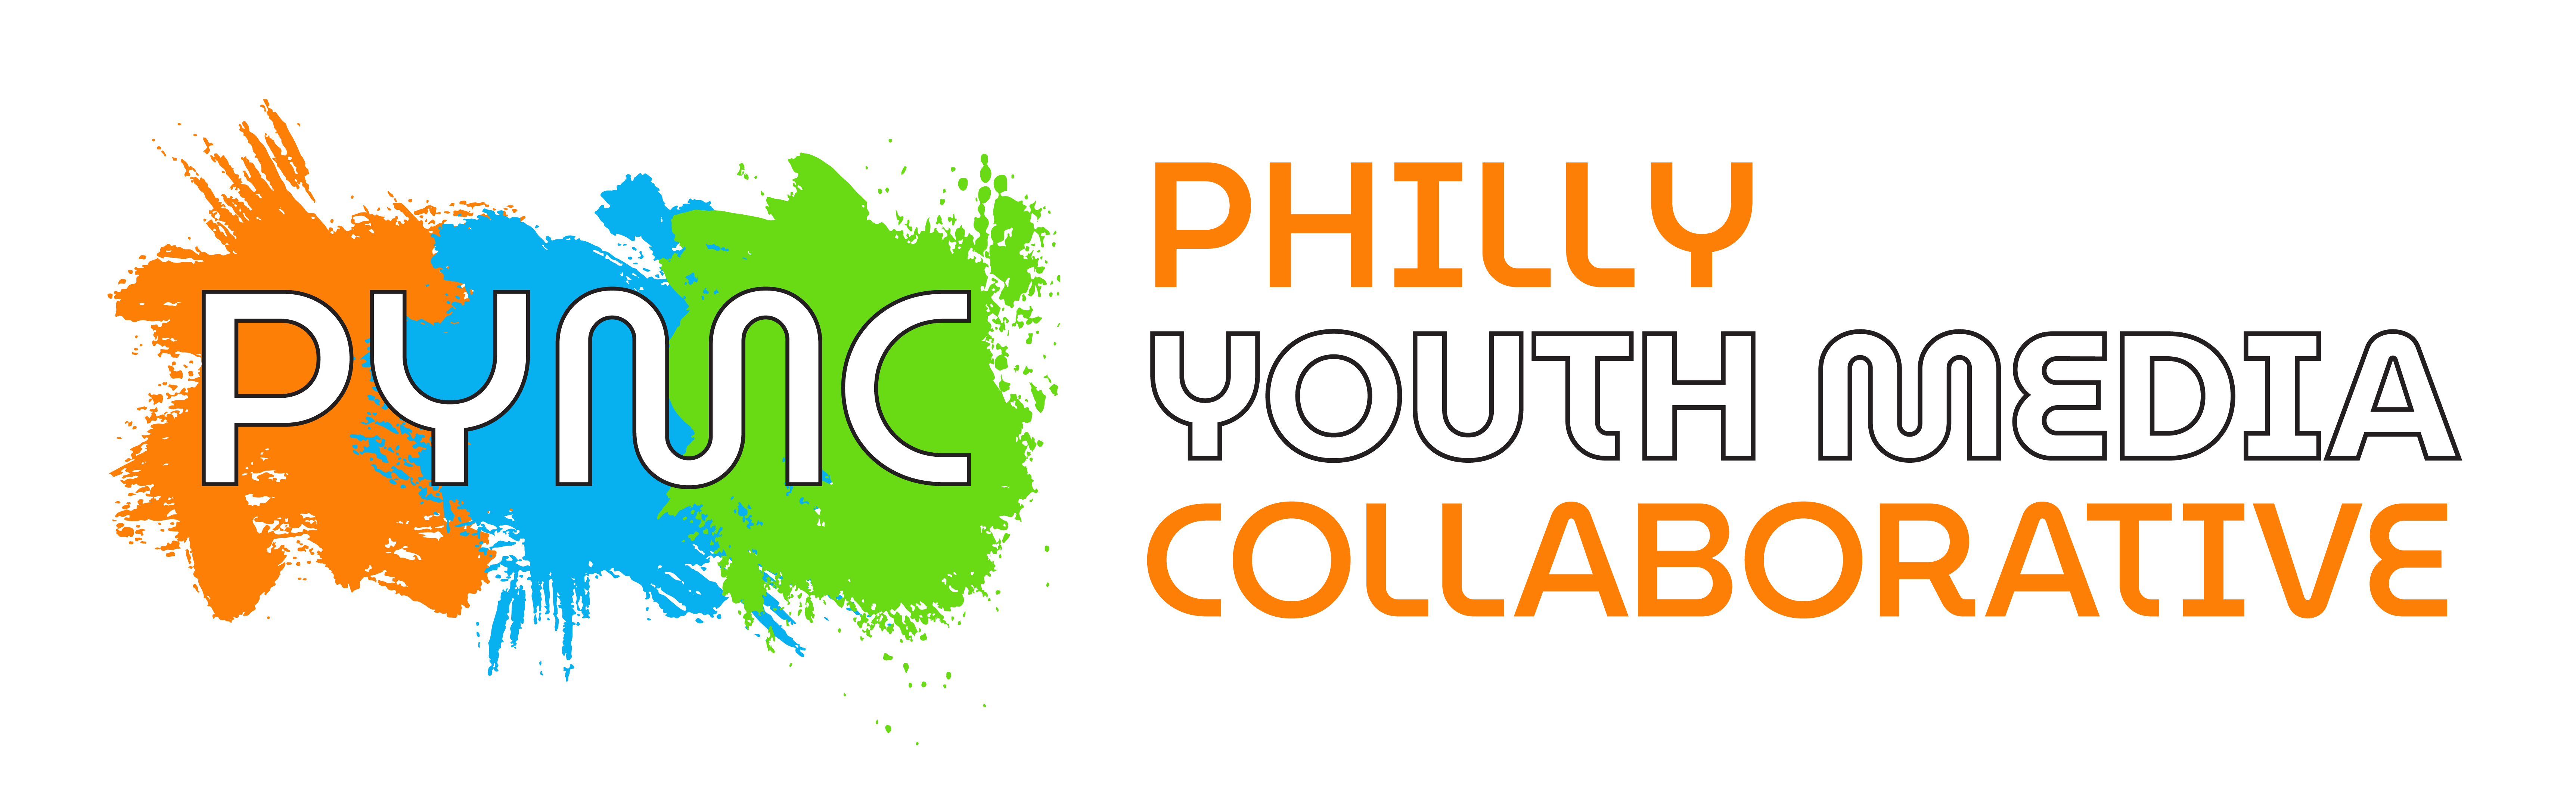 Philly Youth Media Collaborative